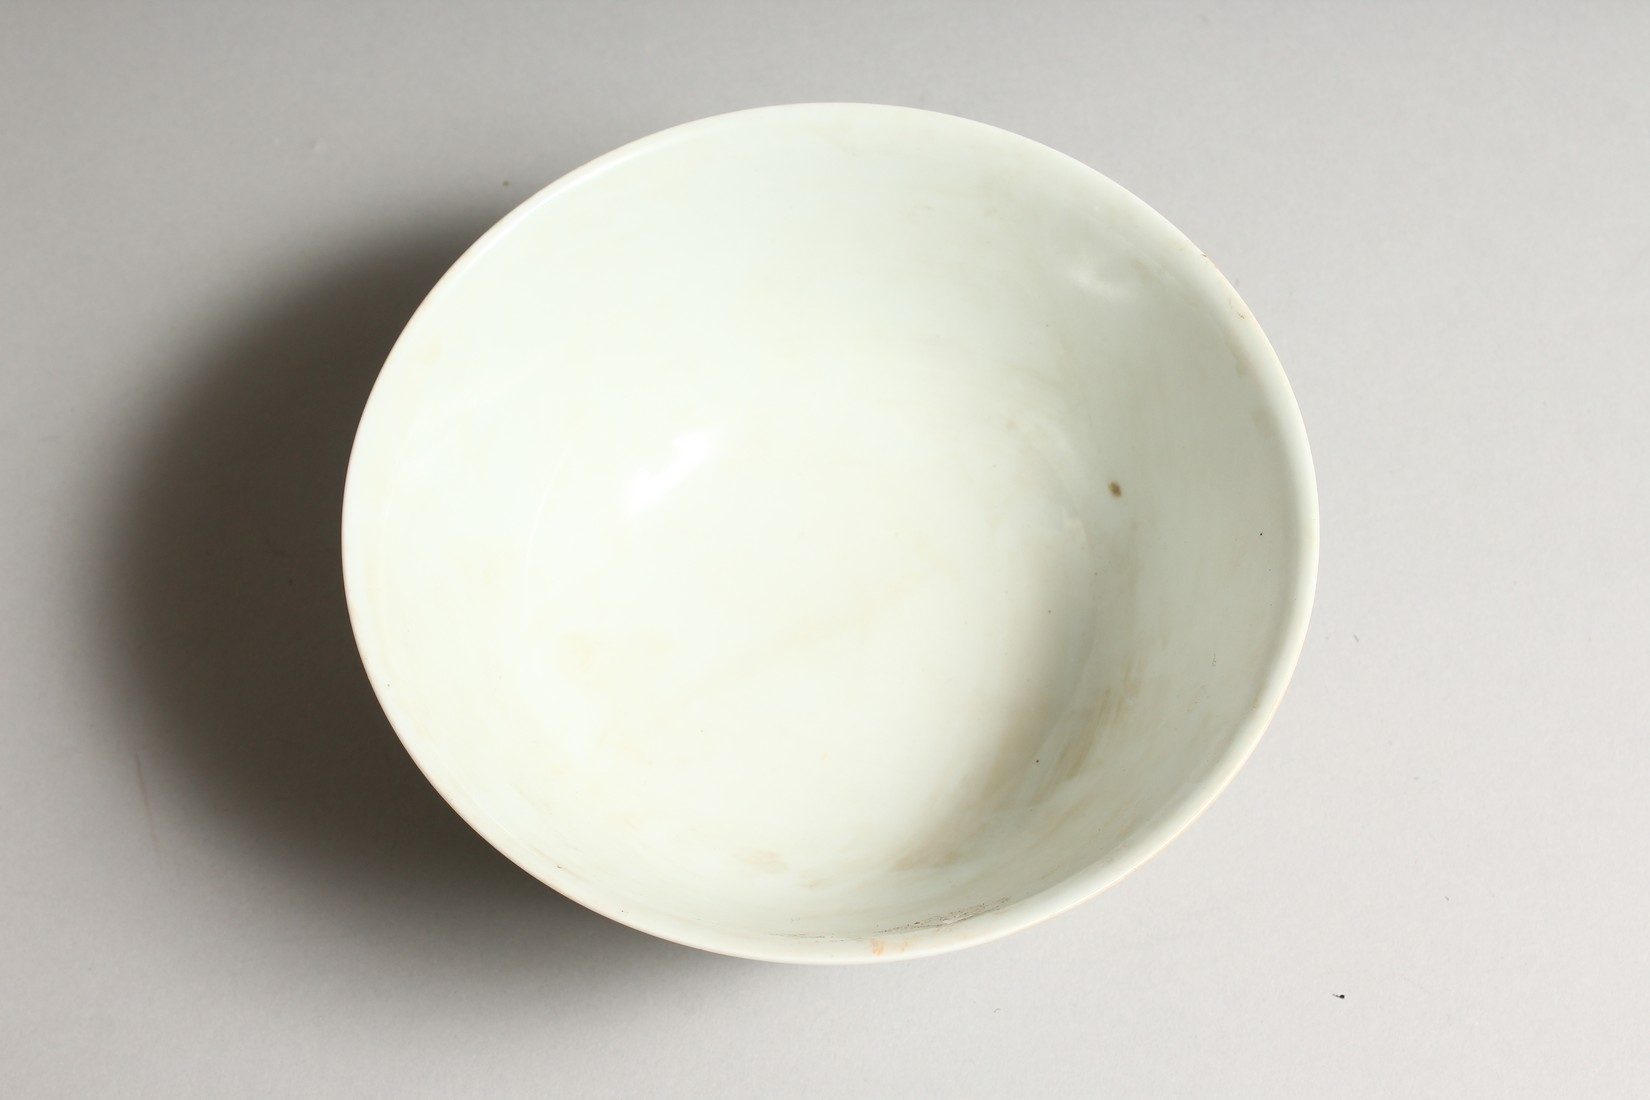 A CHINESE FAMILLE VERTE PORCELAIN BOWL, painted with figures in a landscape. 6.25ins diameter. - Image 5 of 6